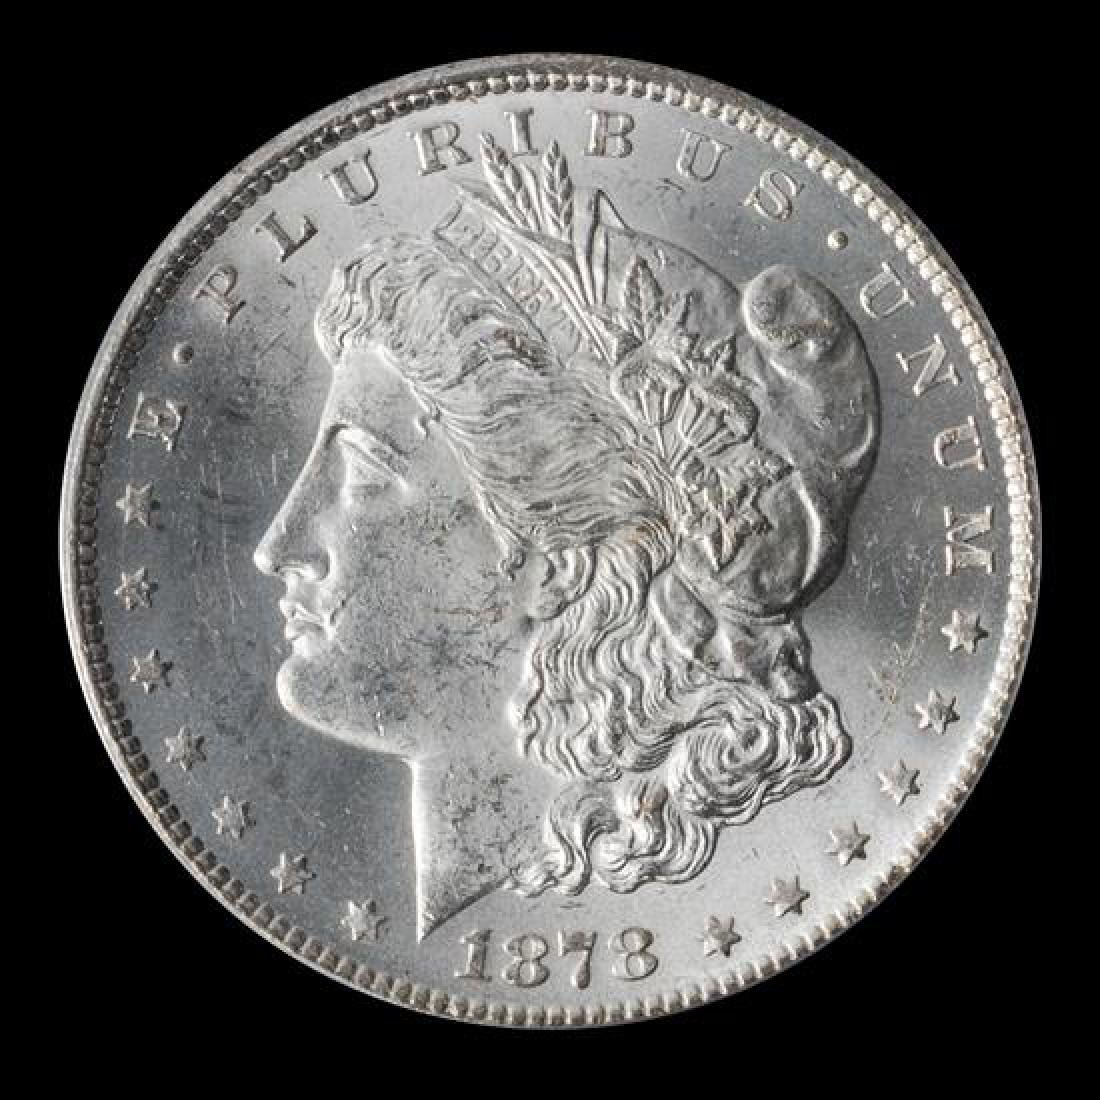 A United States 1878-CC Morgan Silver Dollar Coin